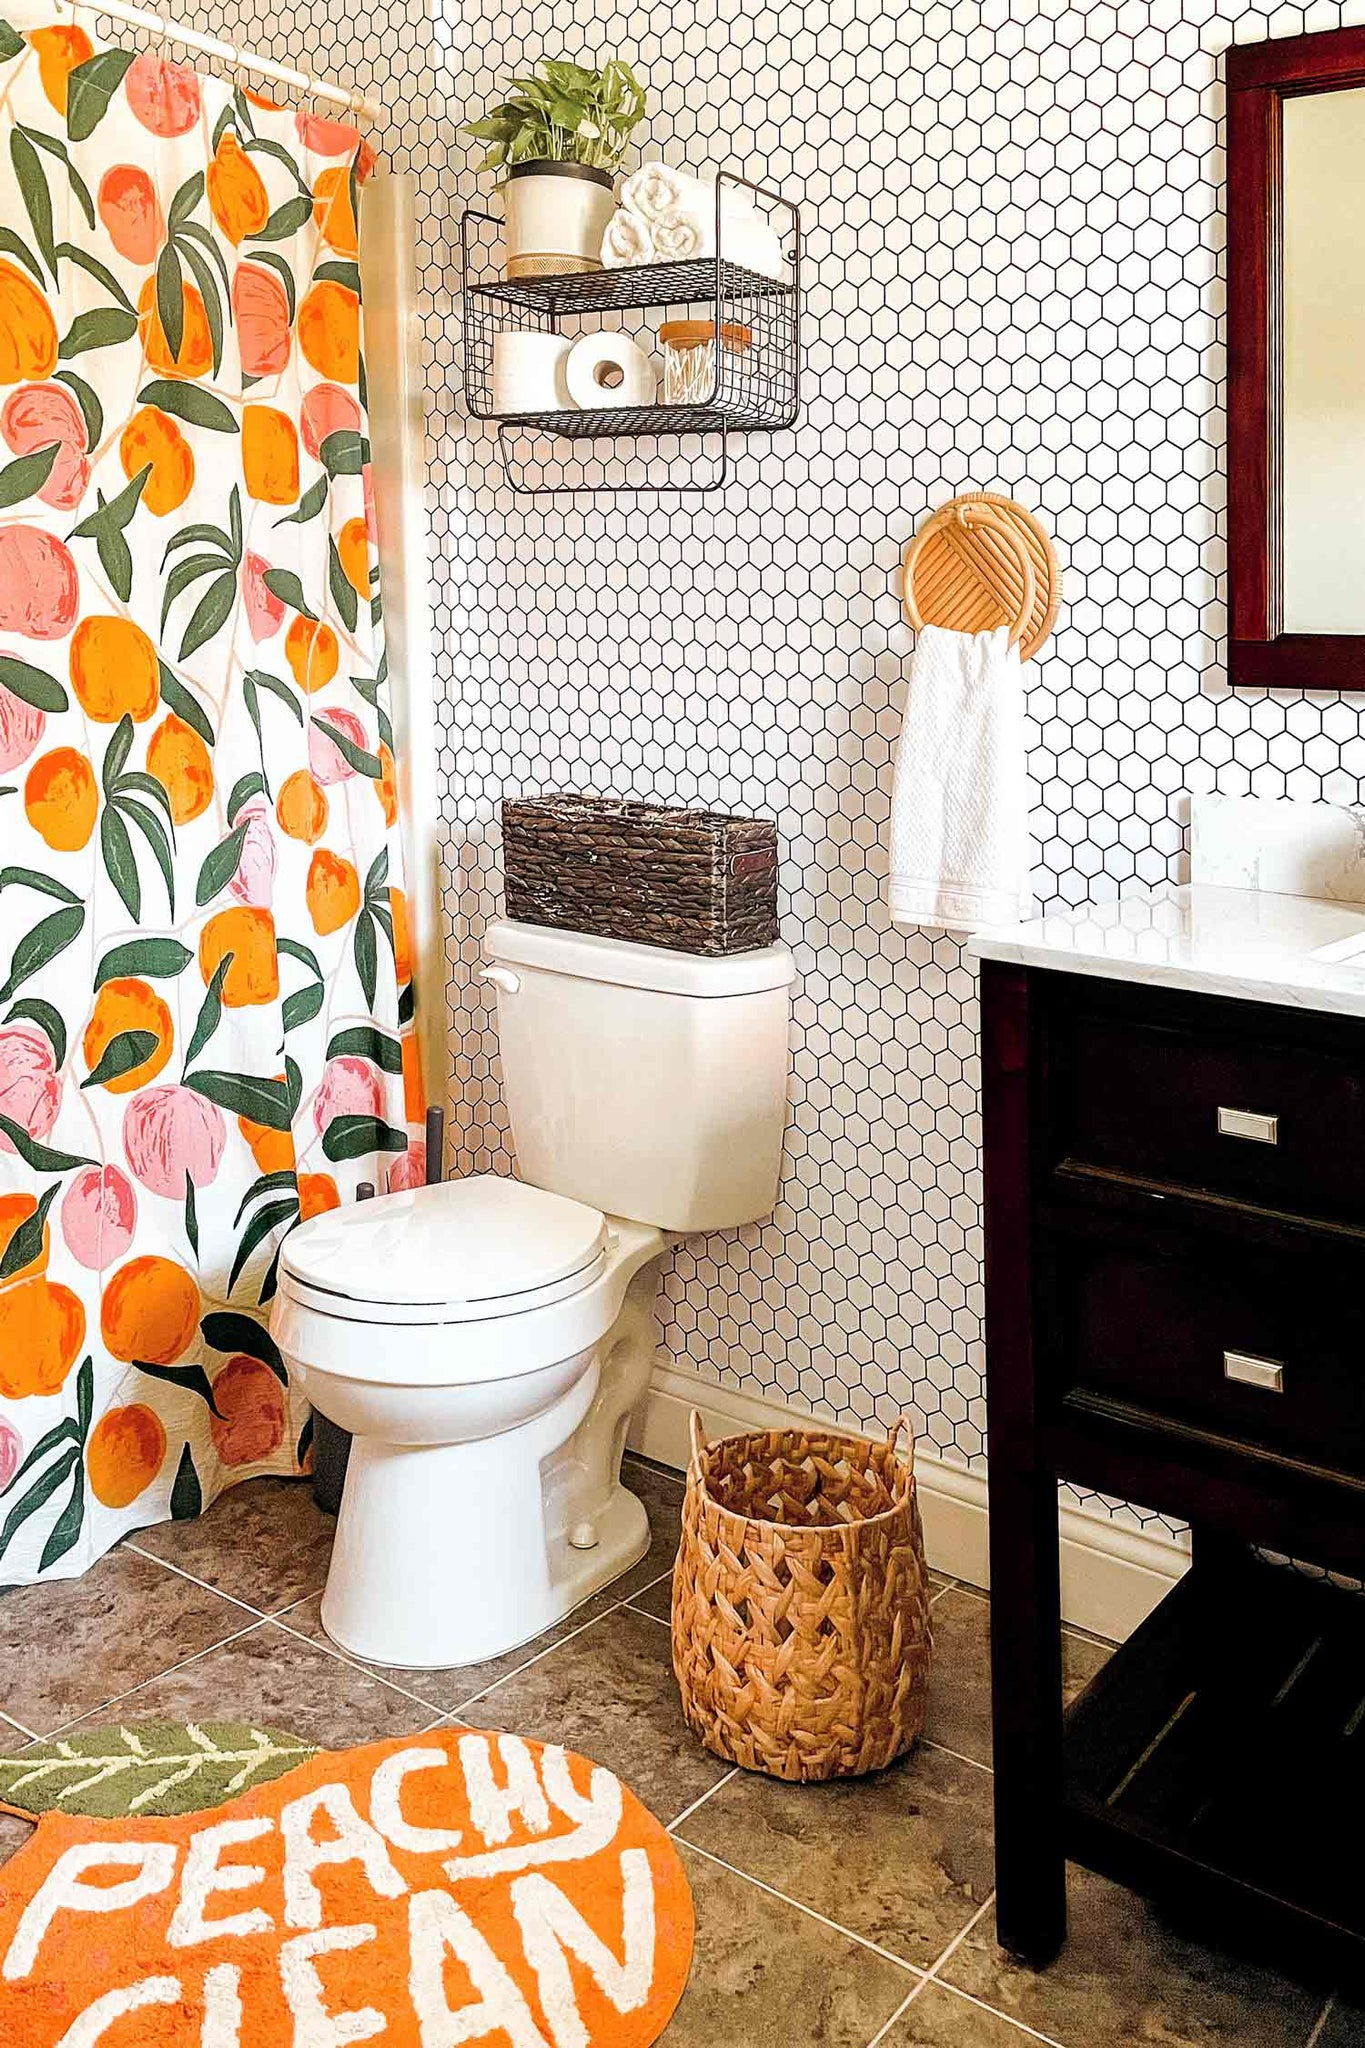 Colorful bathroom interior ideas with peachy shower curtain and floor mat and geometric honeycomb tile removable wallpaper accent wall